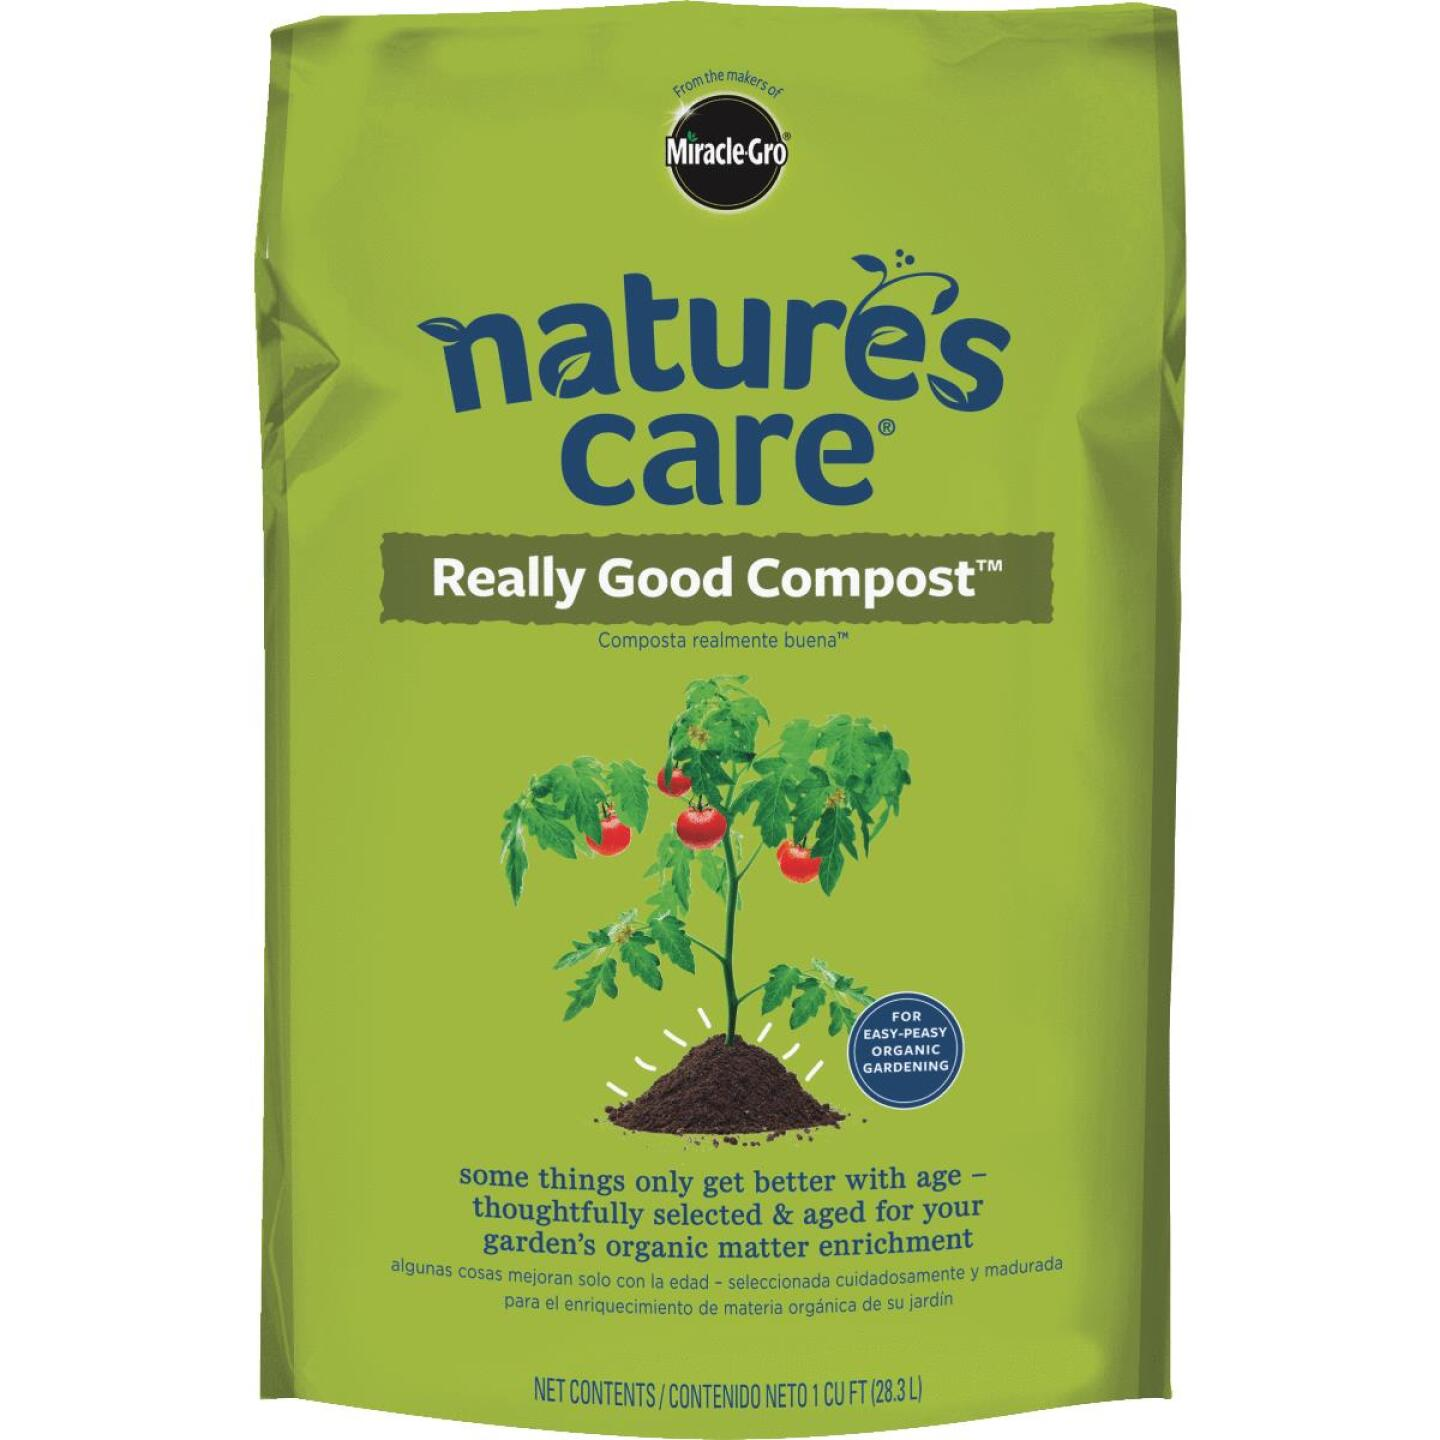 Miracle-Gro Nature's Care 1 Cu. Ft. 36 Lb. Organic Lawn & Garden Compost Image 1